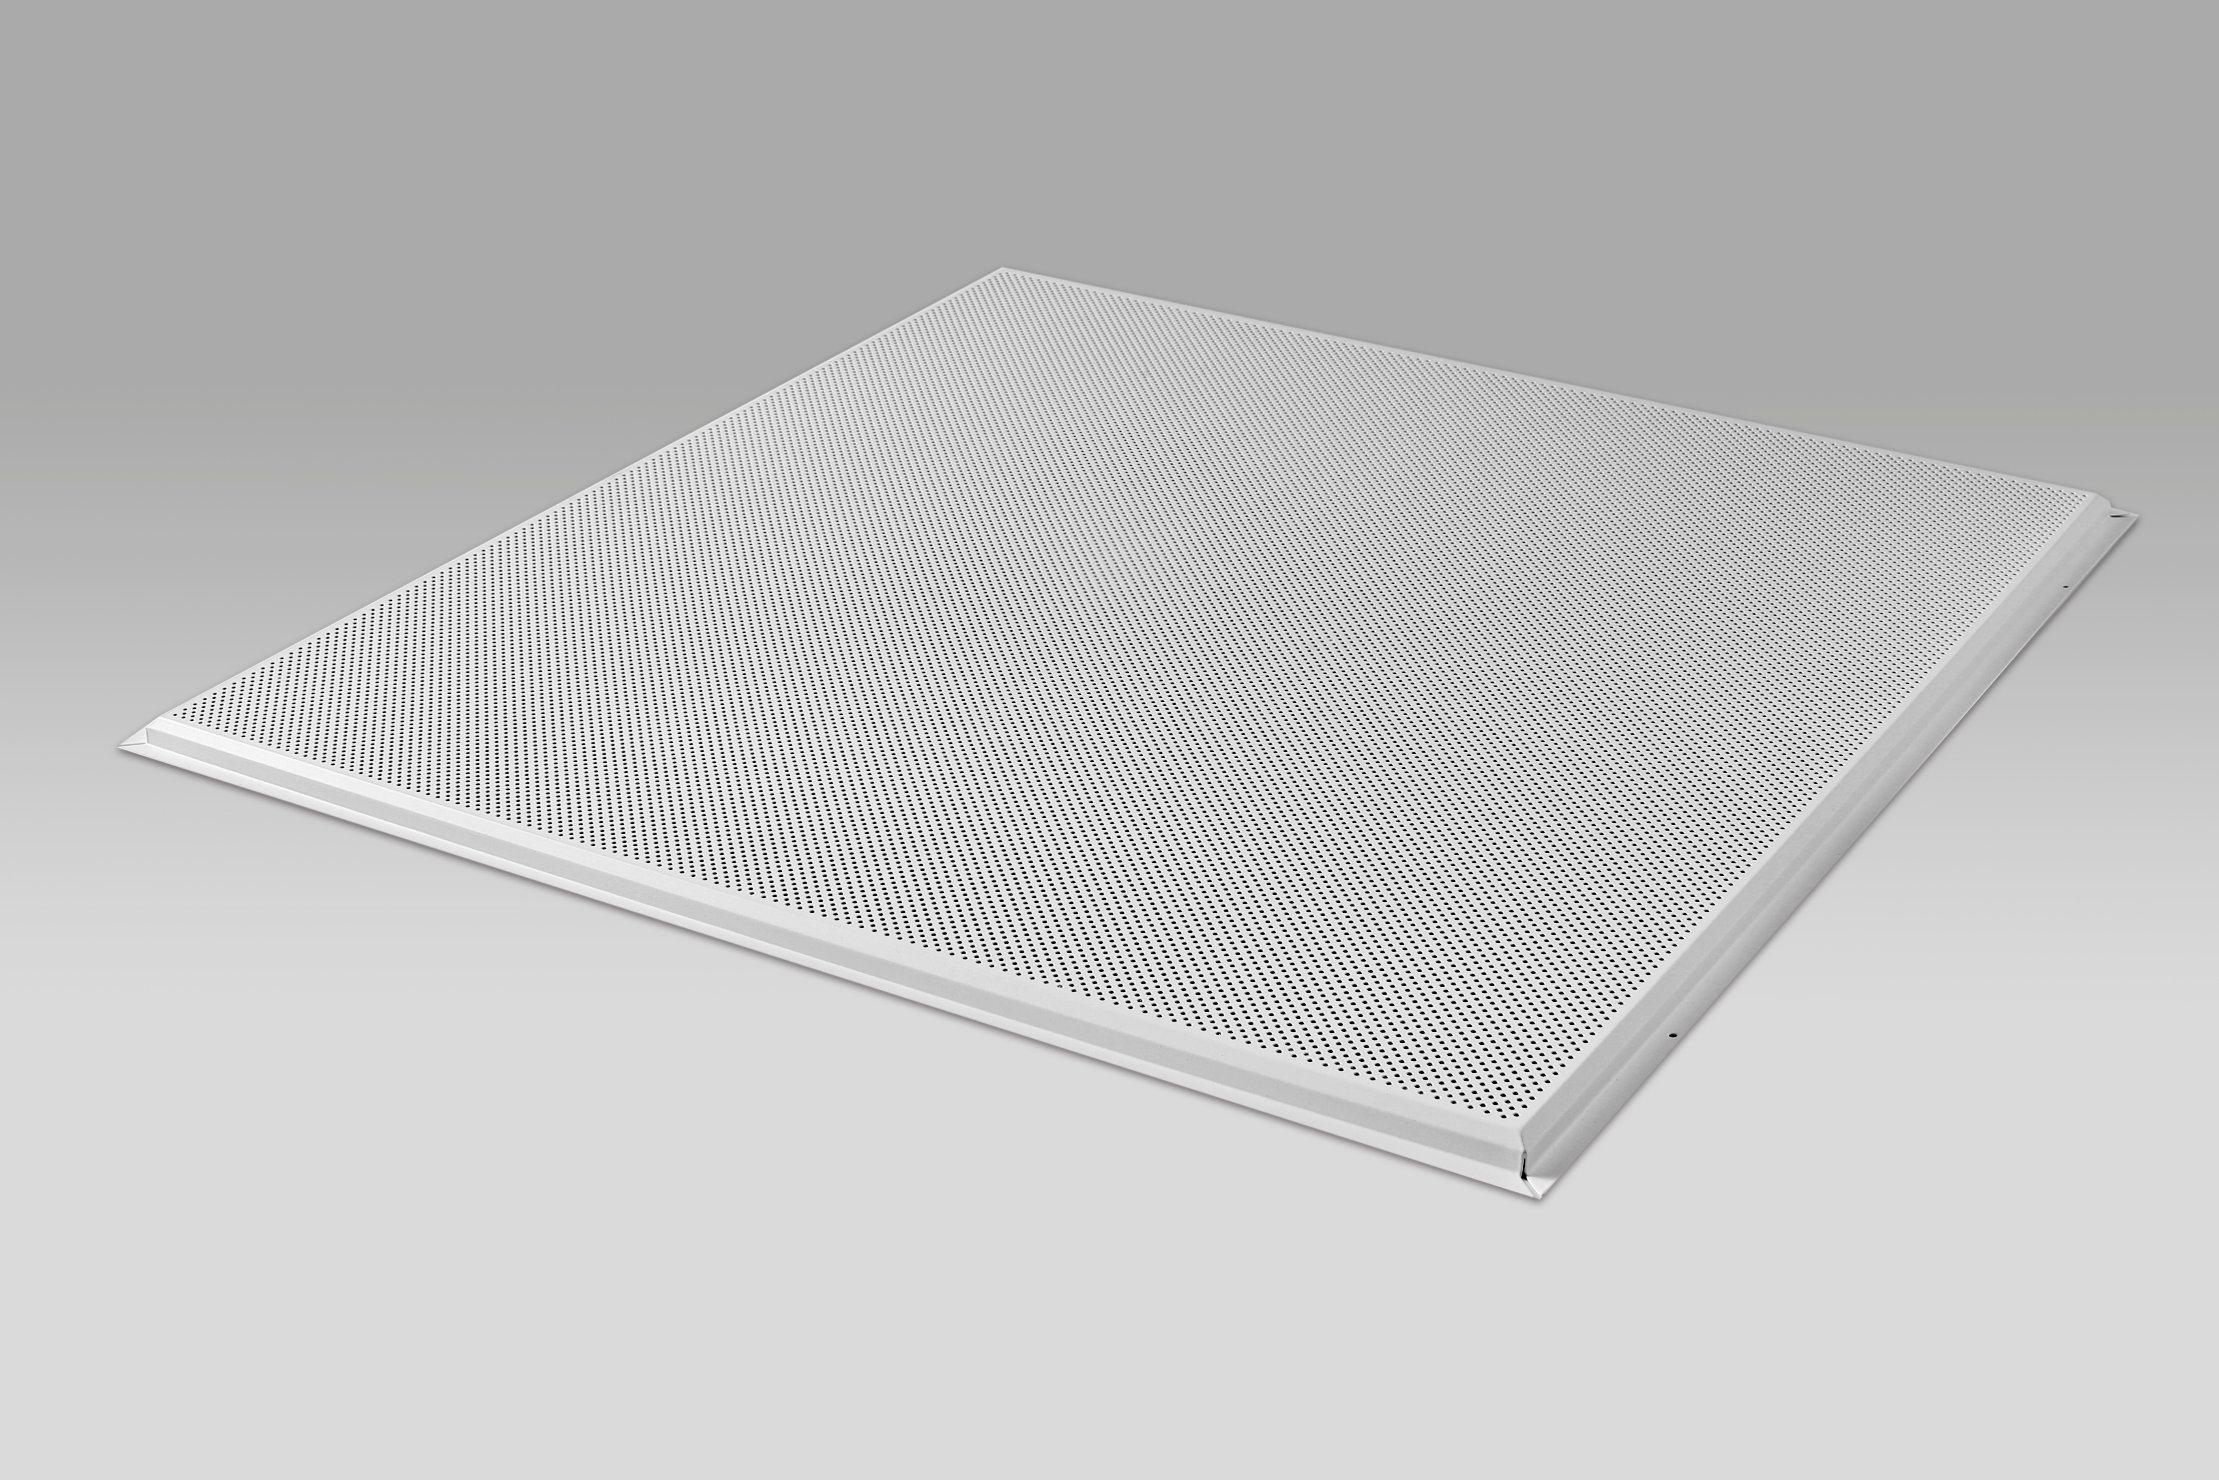 Wonderful 12X12 Ceiling Tiles Asbestos Thick 12X12 Tin Ceiling Tiles Round 12X24 Ceramic Floor Tile 18 Floor Tile Old 18 X 18 Floor Tile Fresh2X2 Suspended Ceiling Tiles China Metal Lay In Aluminum Ceiling Tile With ISO 9001 Photos ..